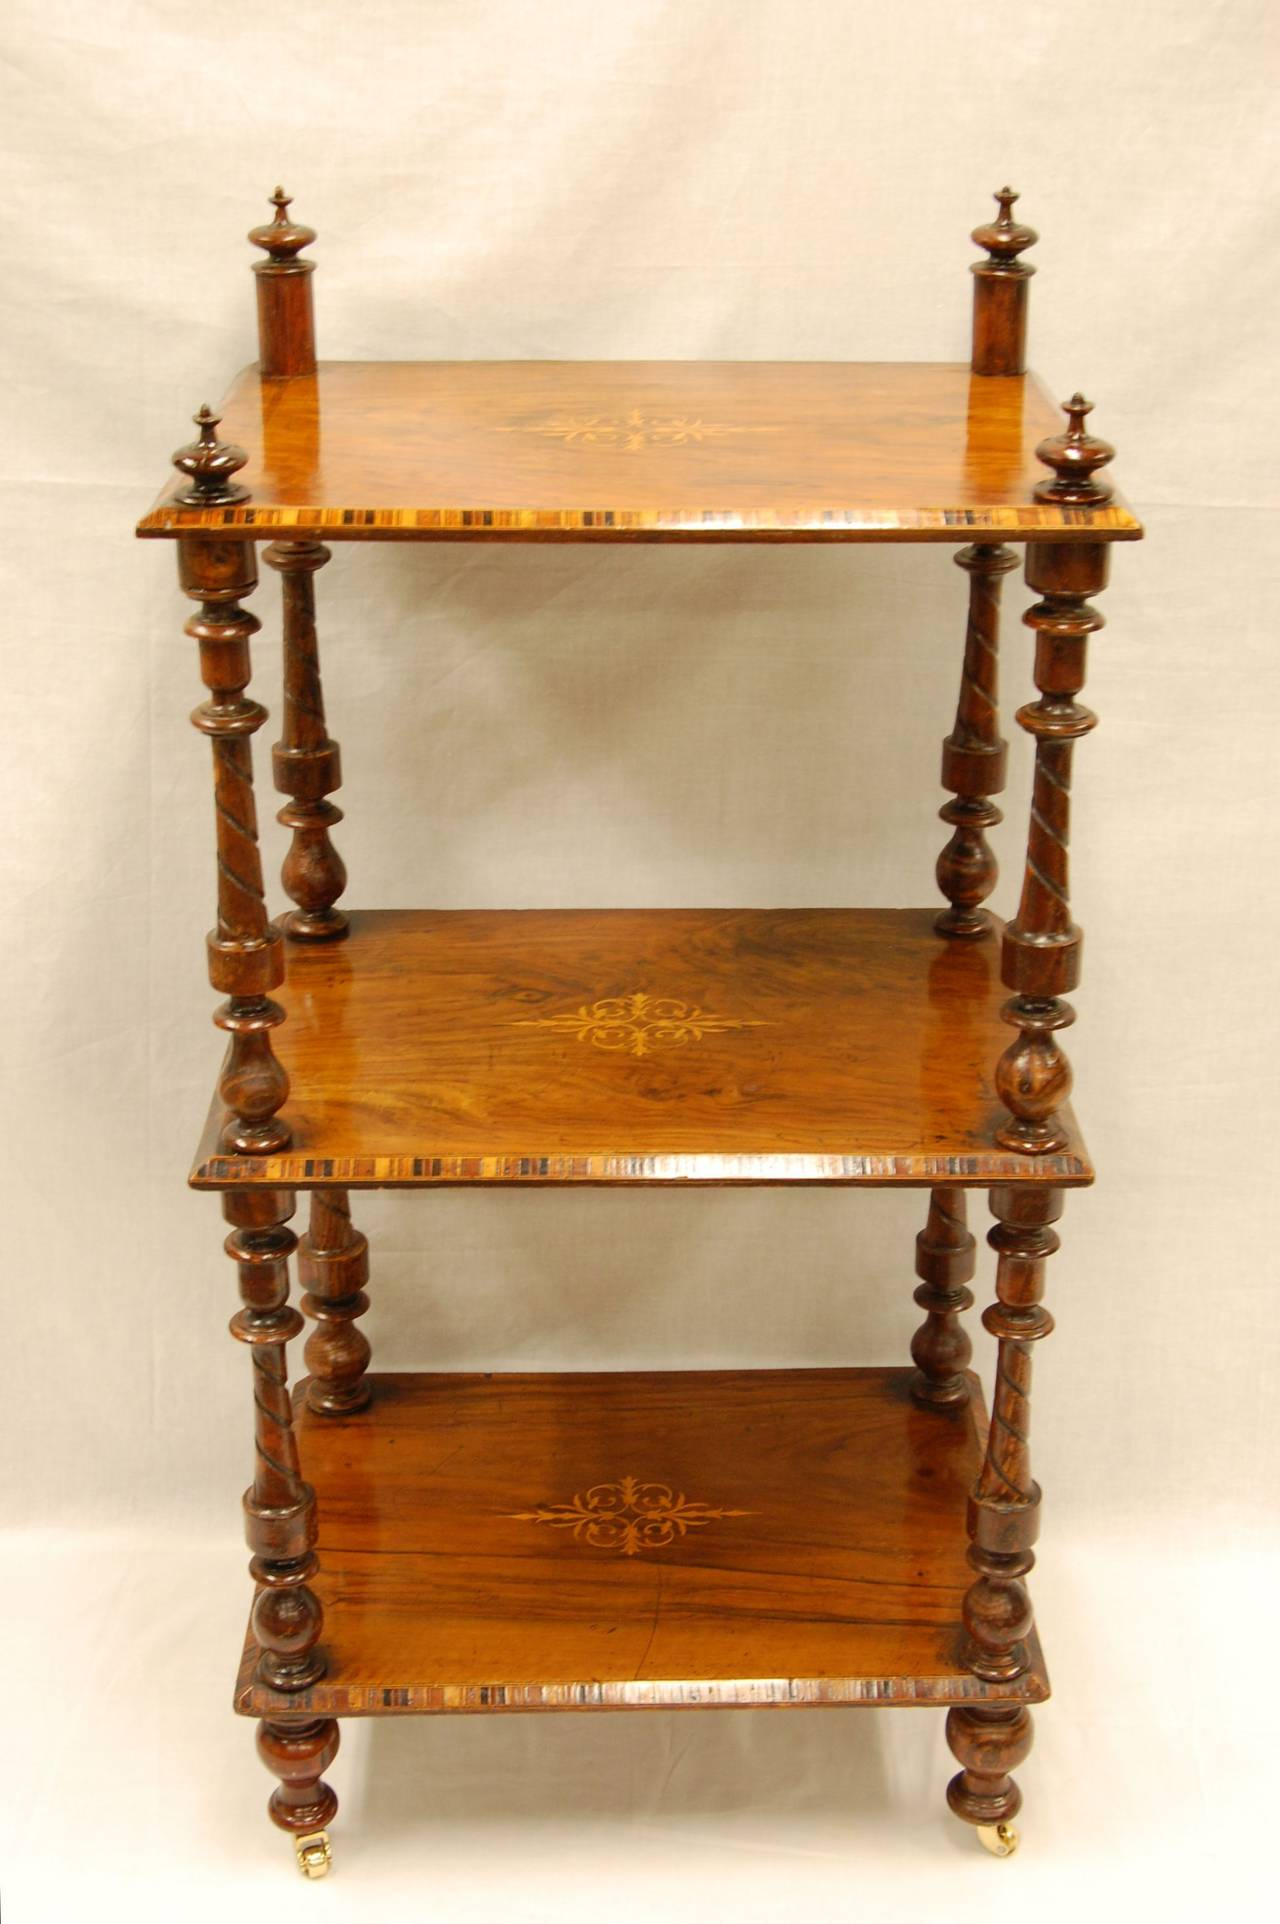 Hand-Carved Early Victorian Era Rosewood Book Stand with Satinwood Banding For Sale